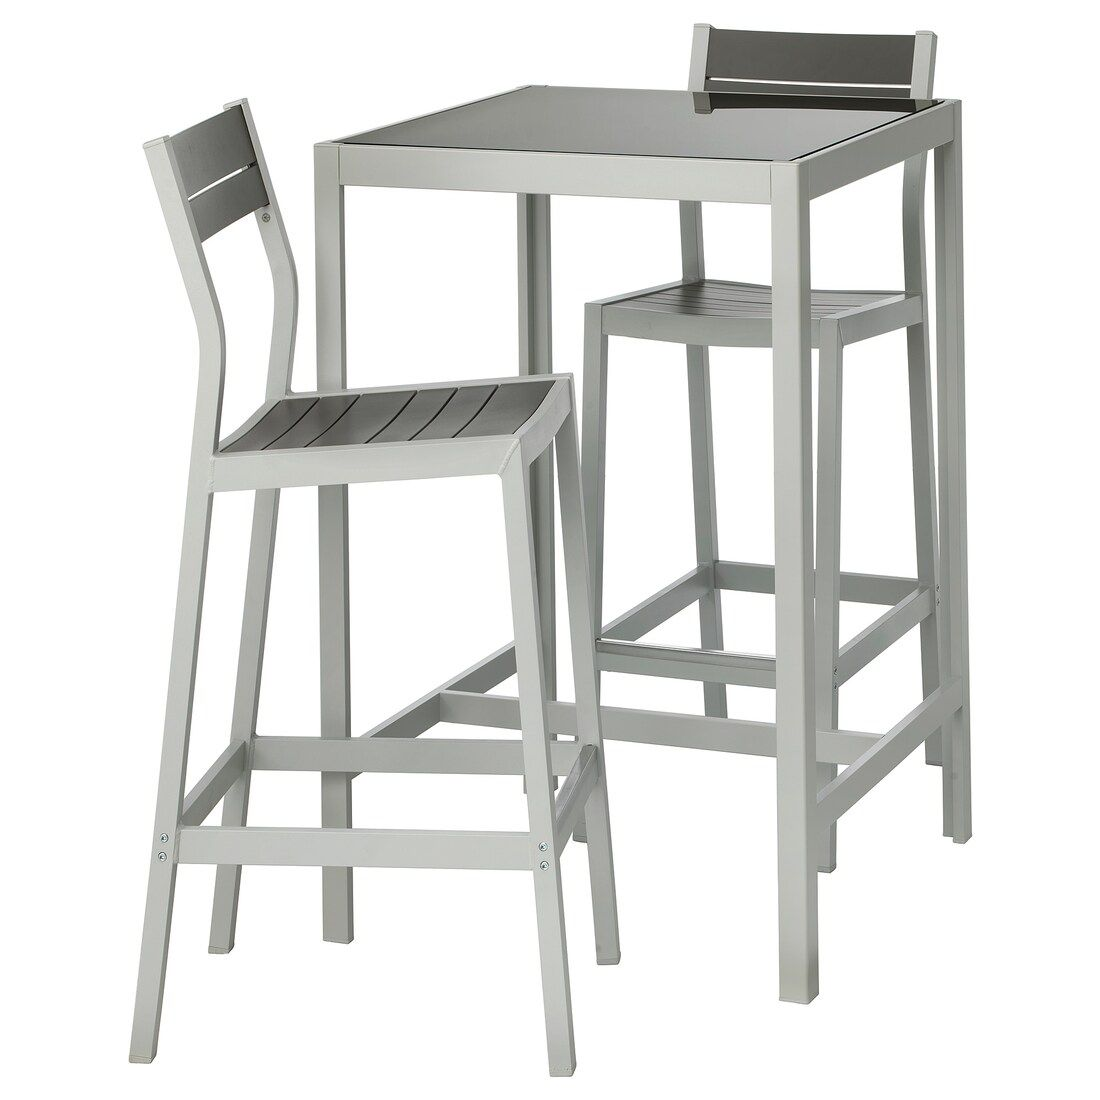 Sjalland Table Bar Et 2 Tabourets Exterieur Verre Gris Gris Clair Ikea In 2020 Bar Stools Bar Table Outdoor Bar Stools